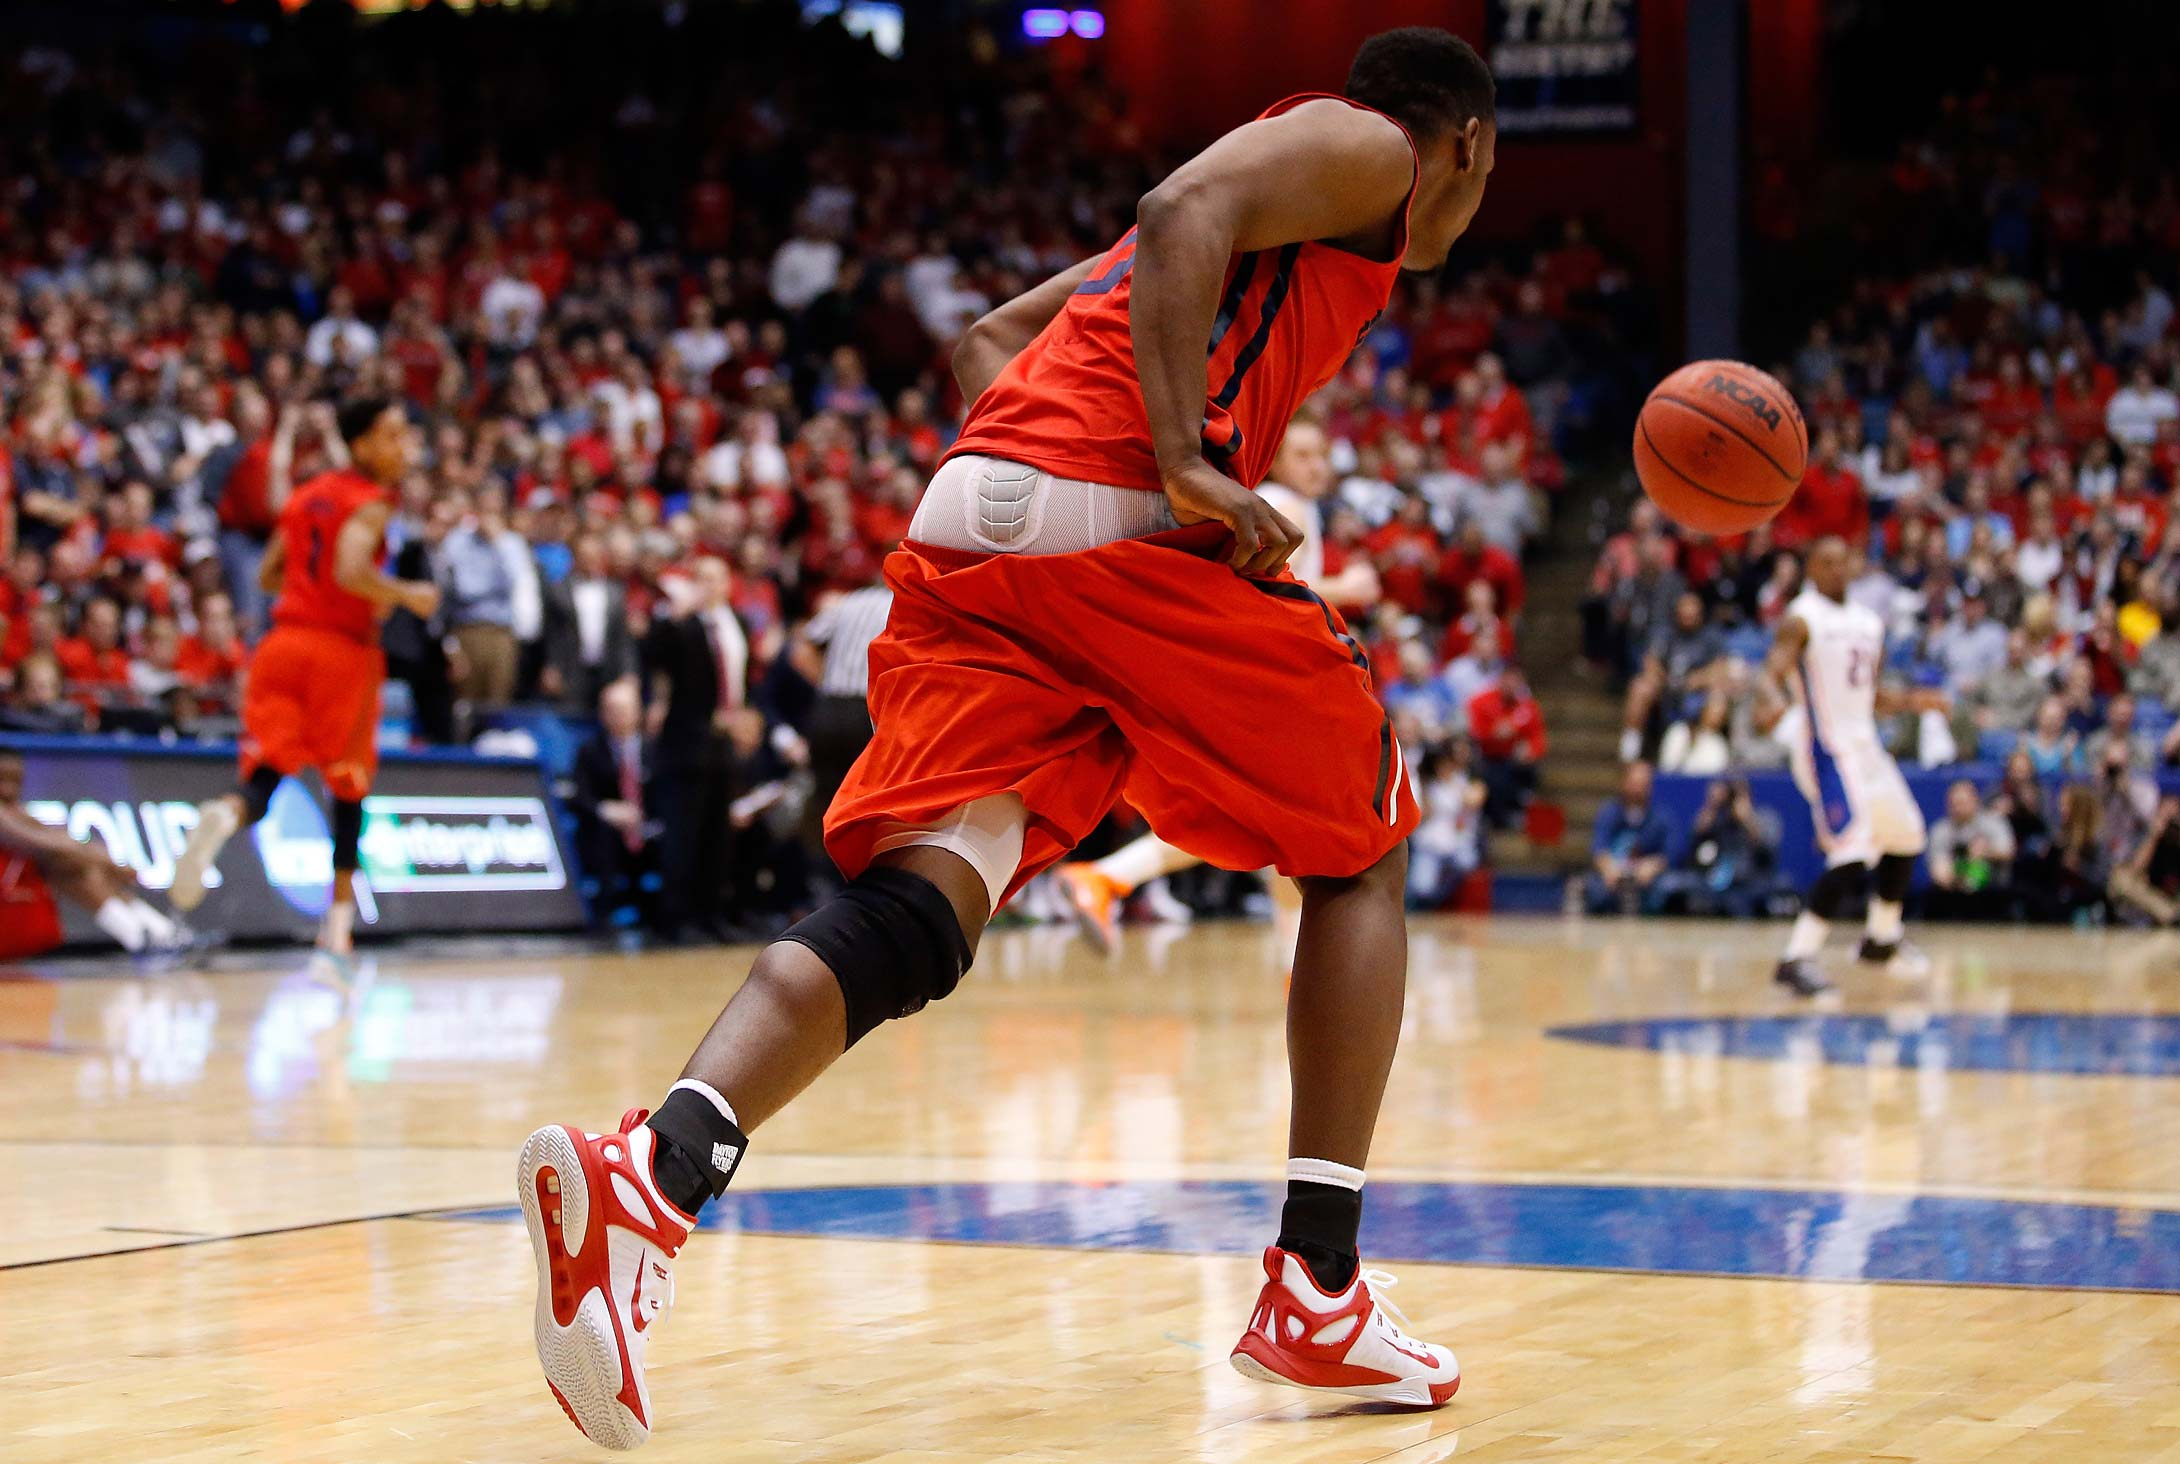 Dyshawn Pierre's shorts fell down during Dayton's opening game.